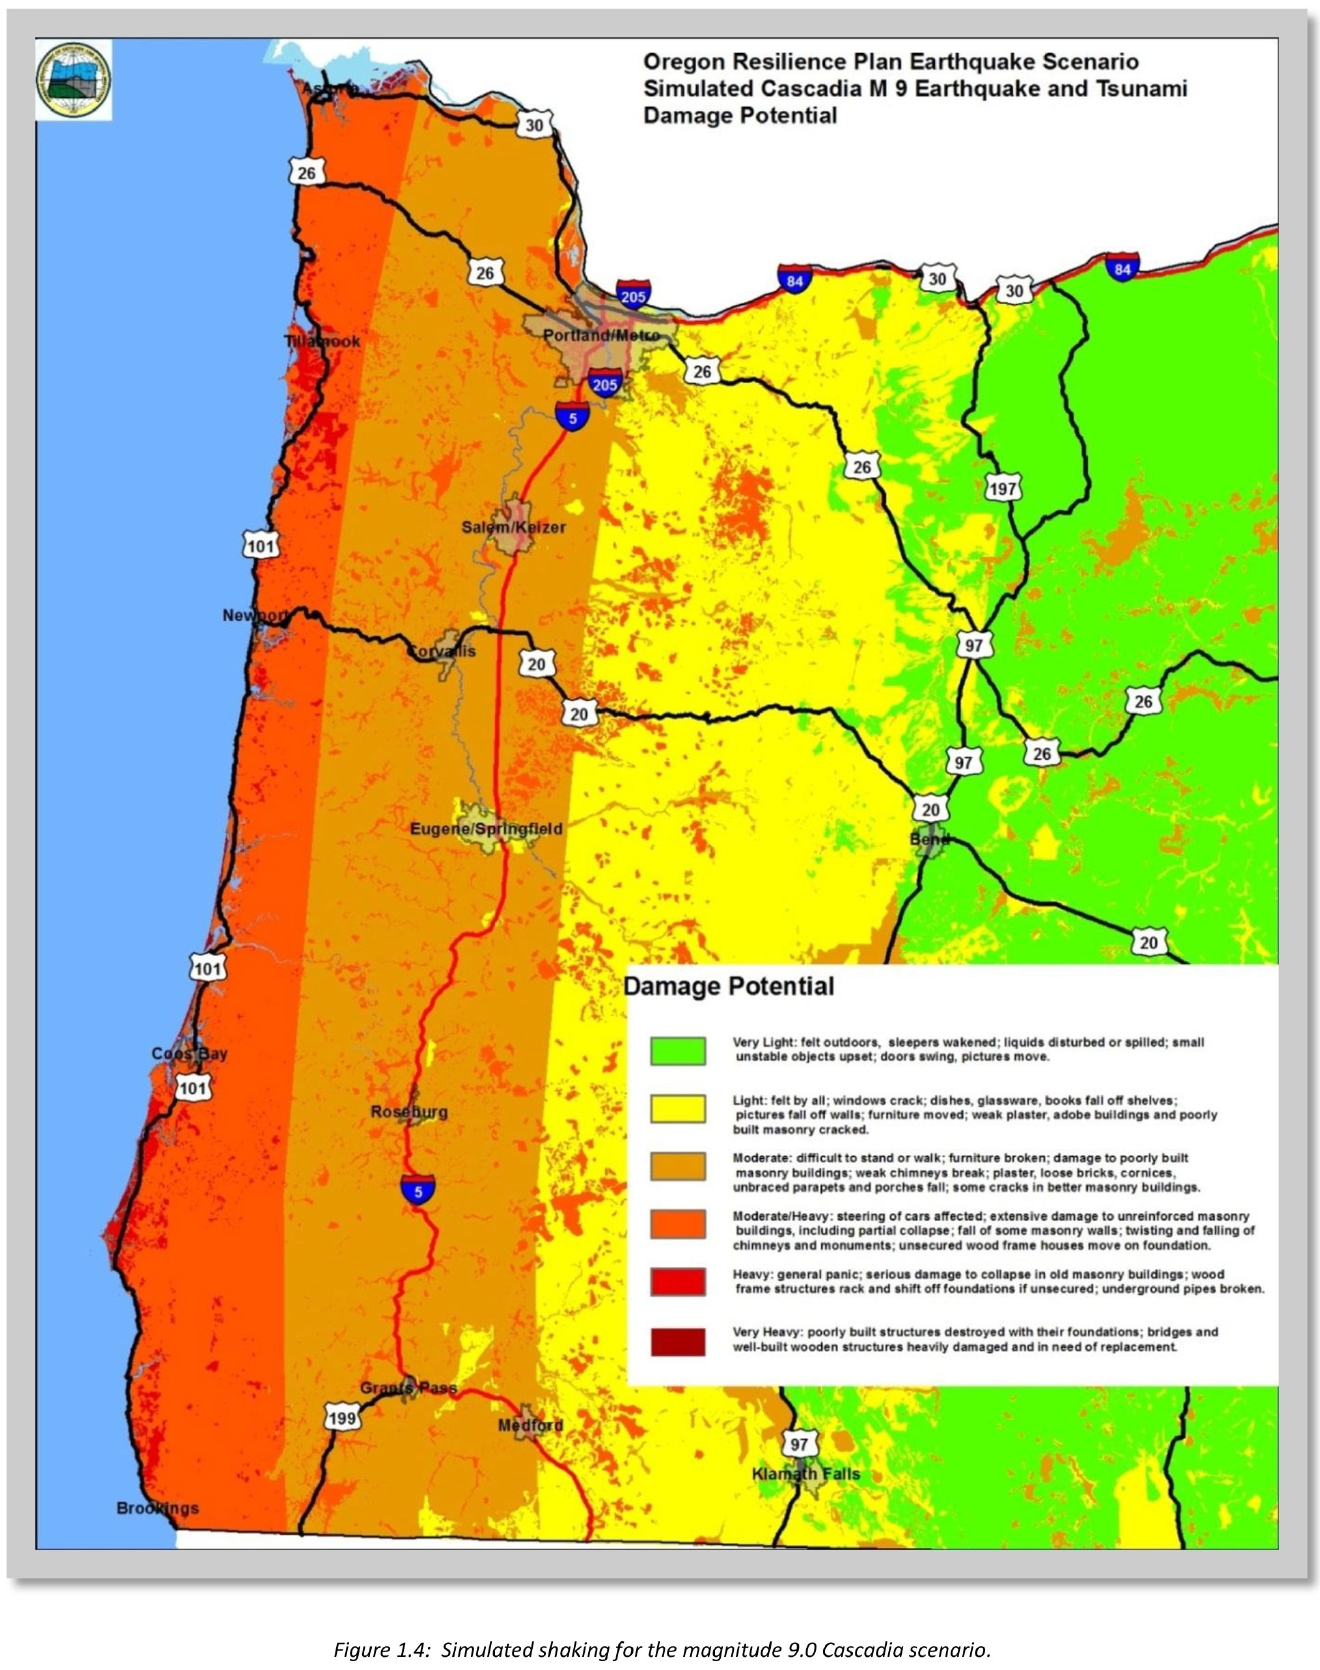 From the 2013 Oregon Resilience Plan